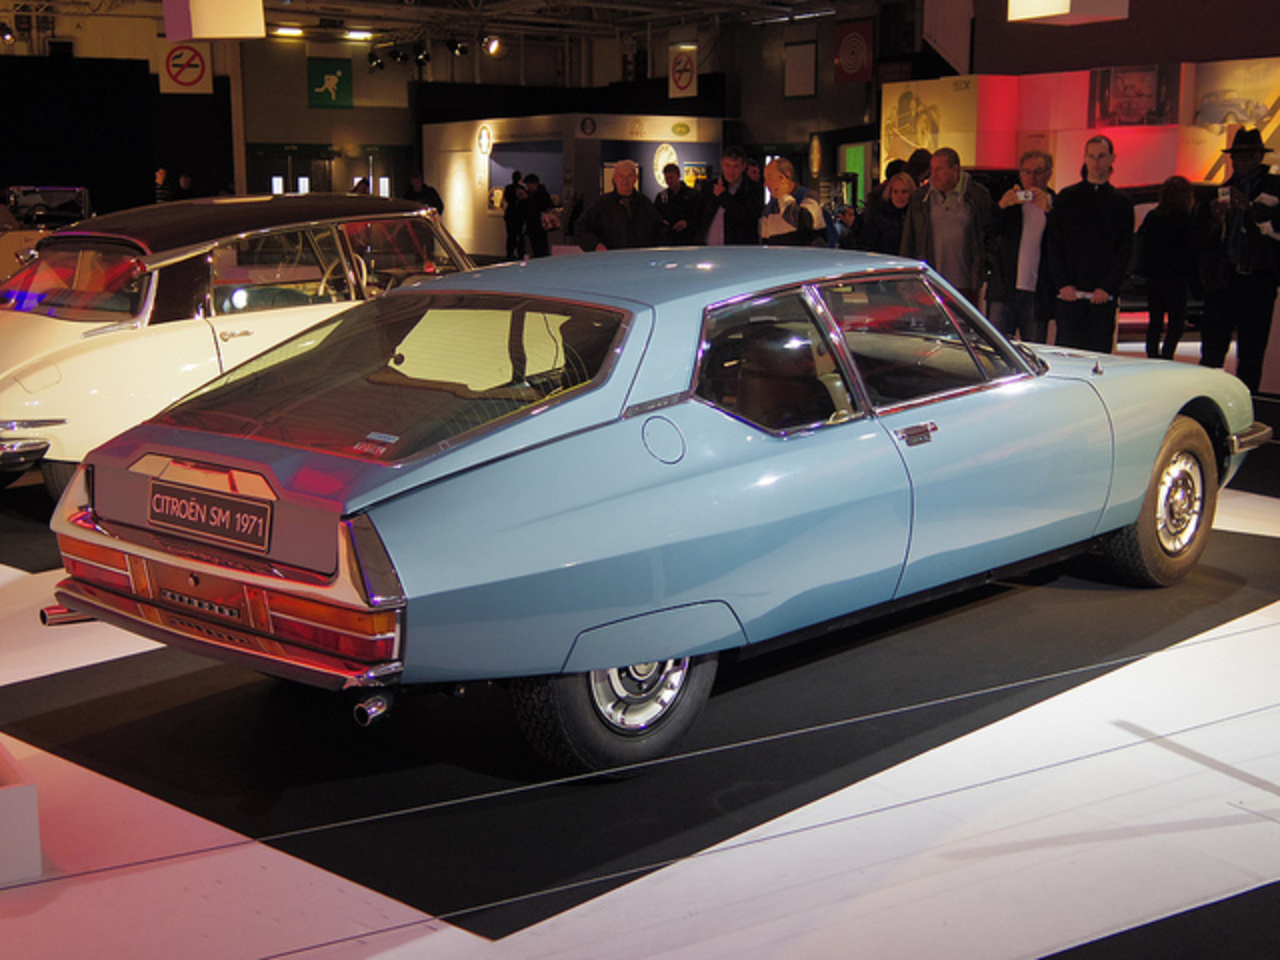 The greatest French car since the Citroën SM | Flickr - Photo Sharing!